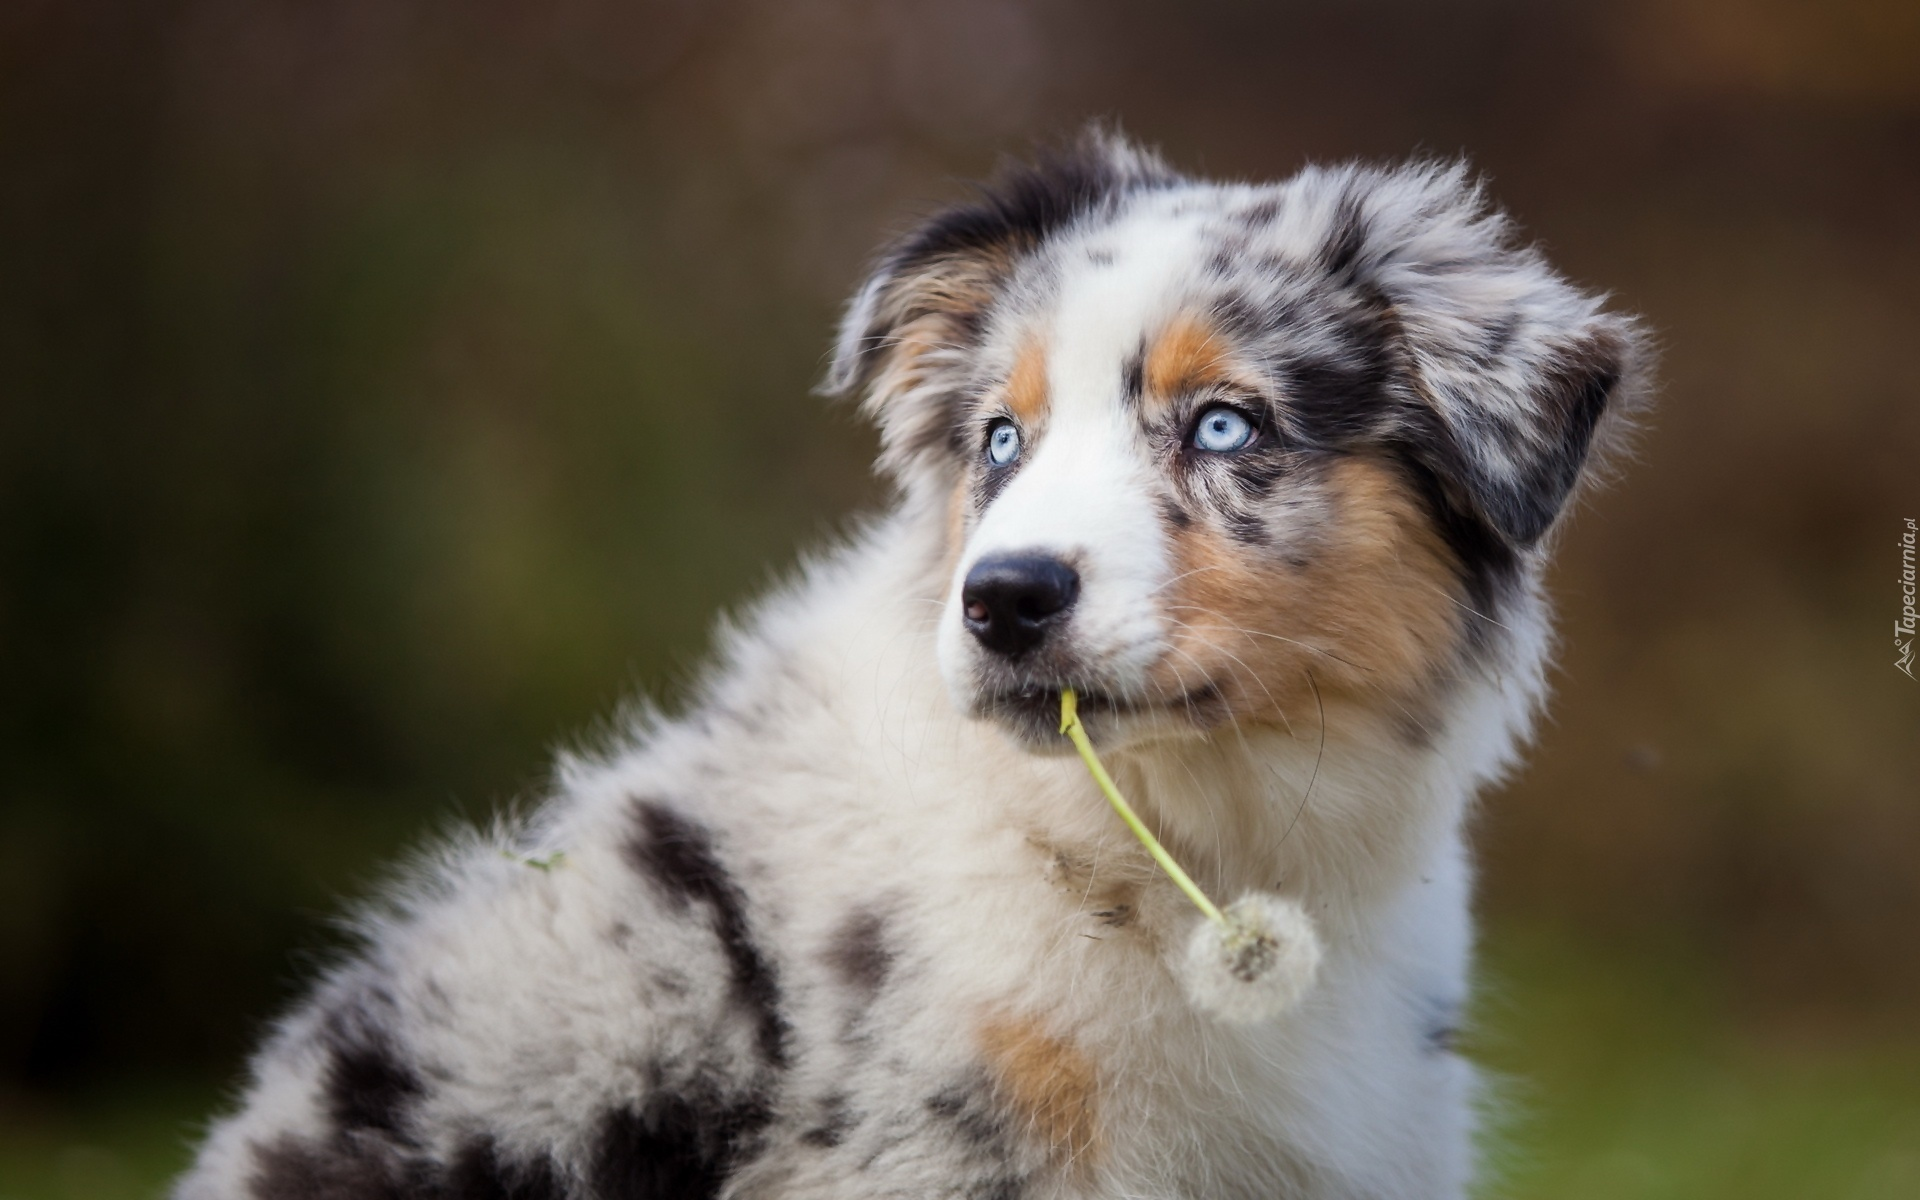 Which Breed Of Dog Has Blue Eyes